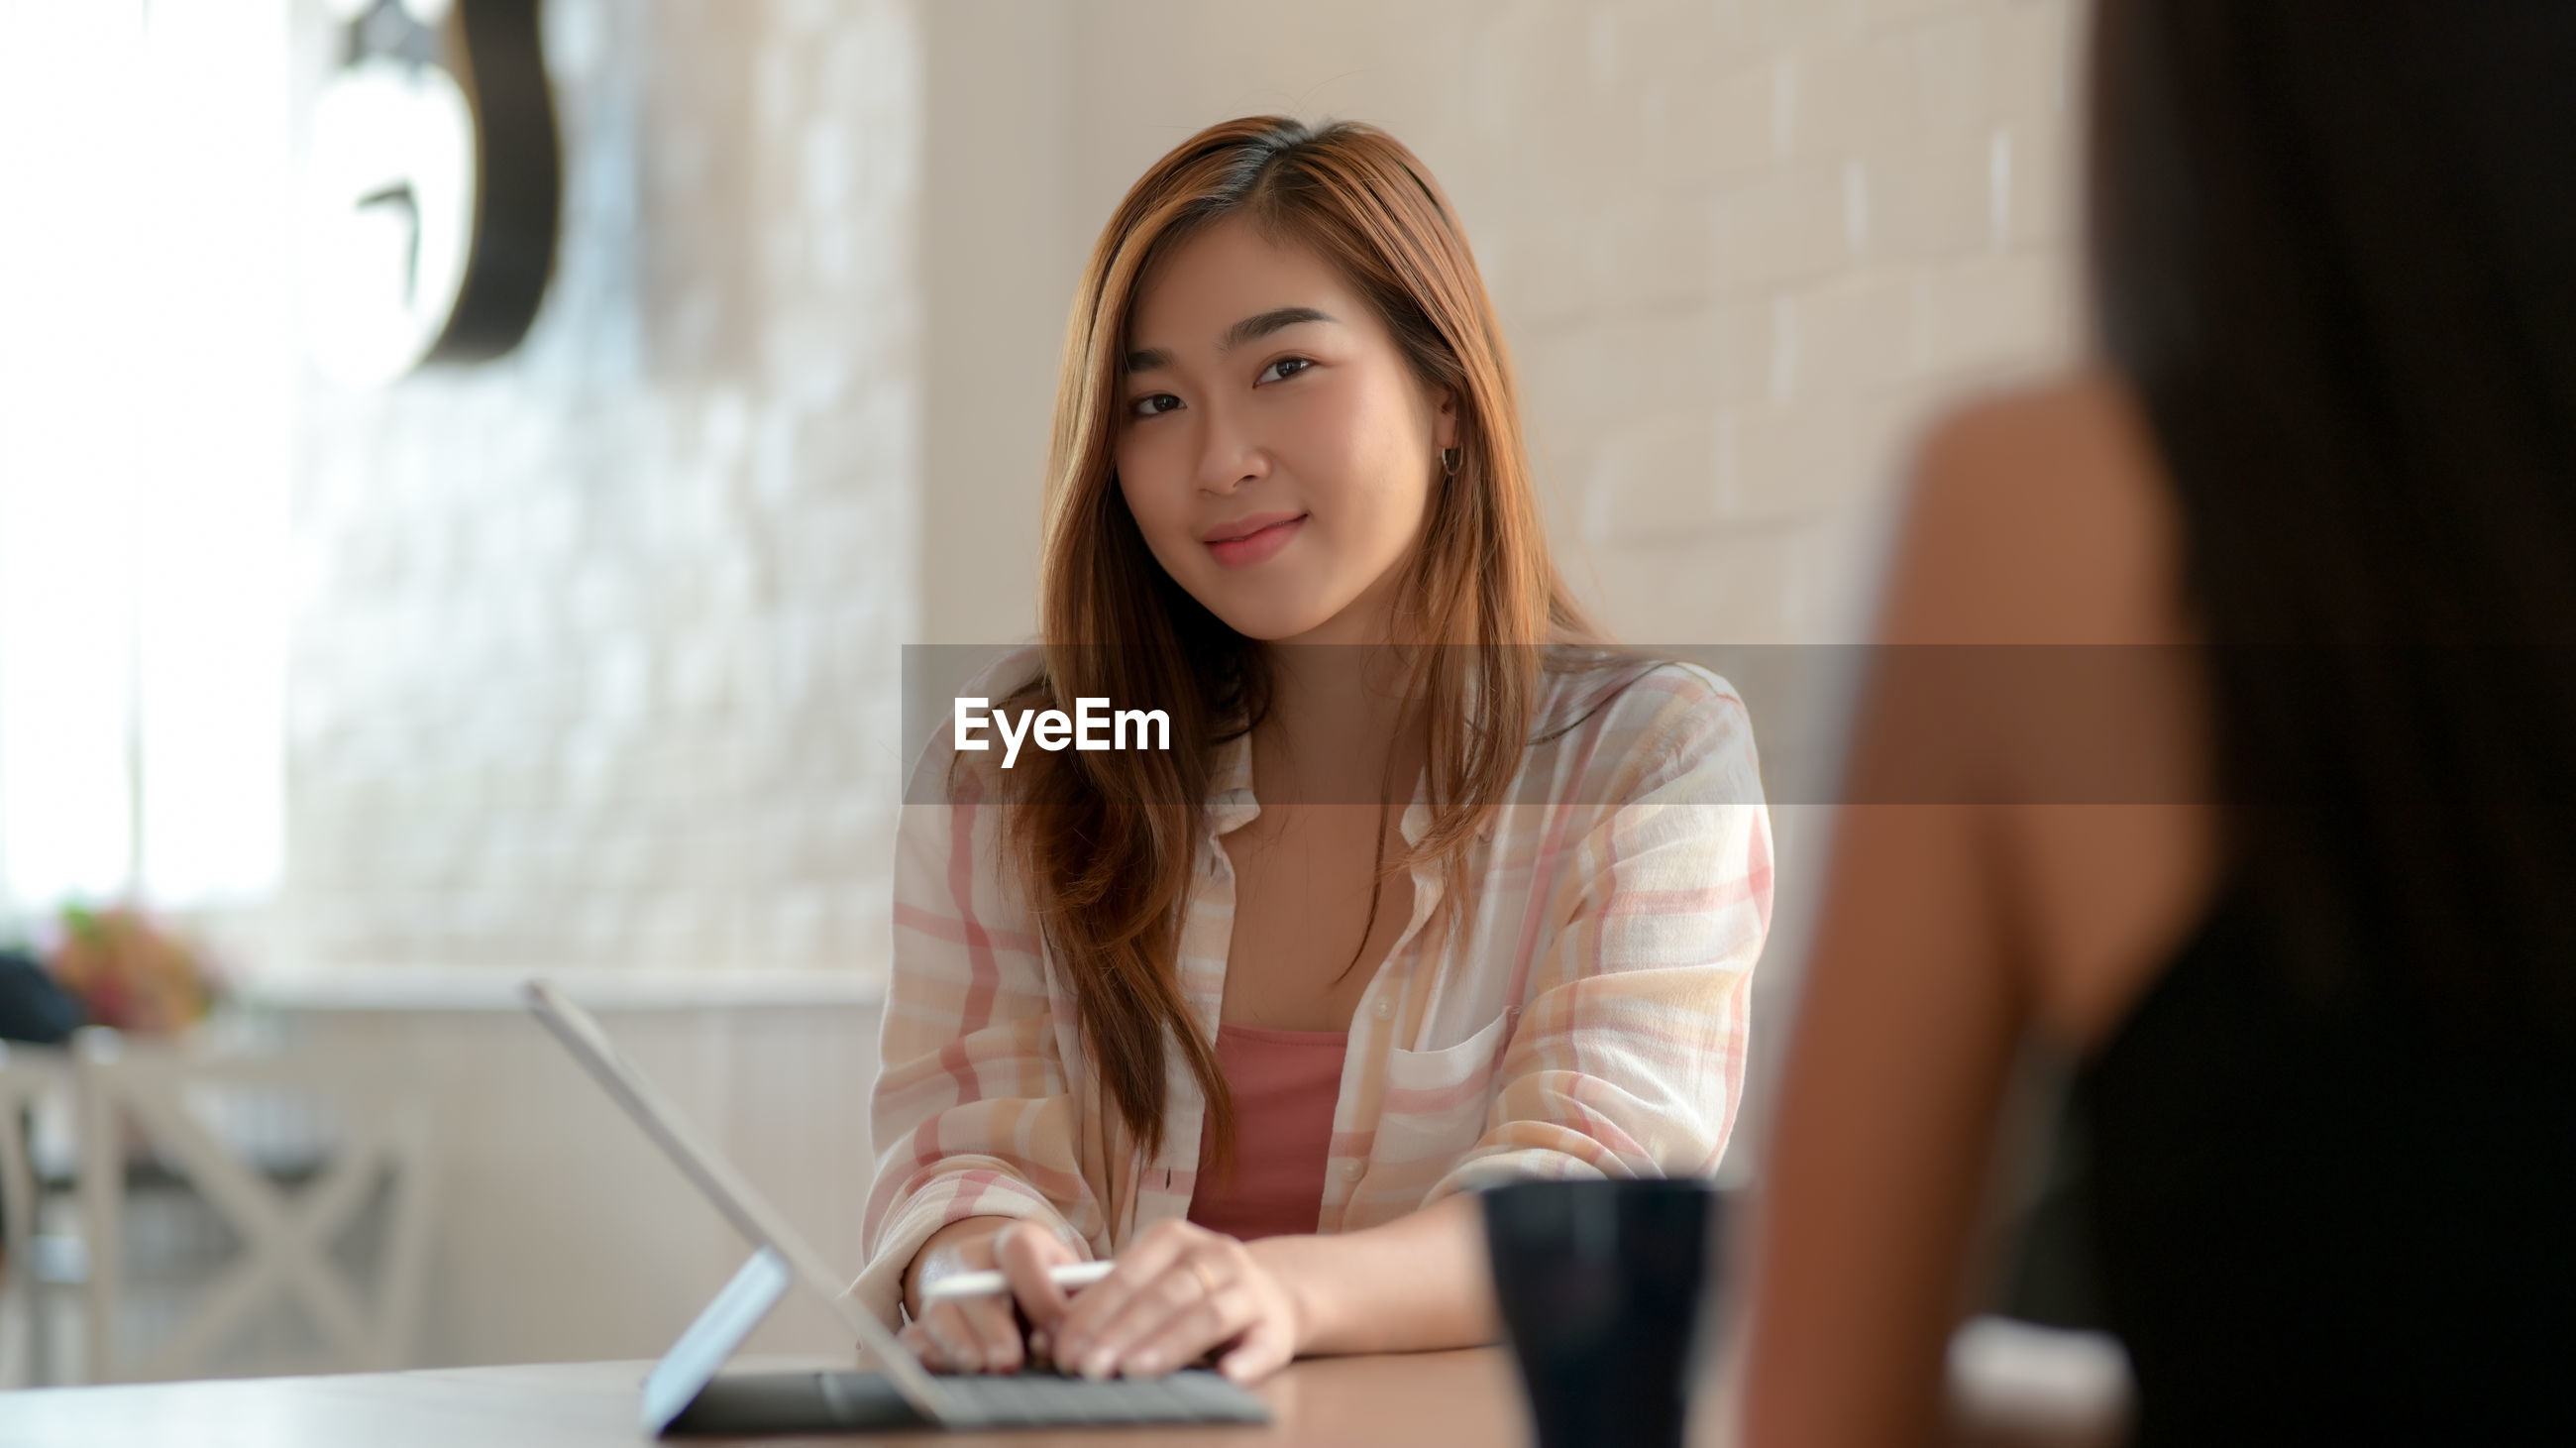 Smiling young woman using digital tablet at table